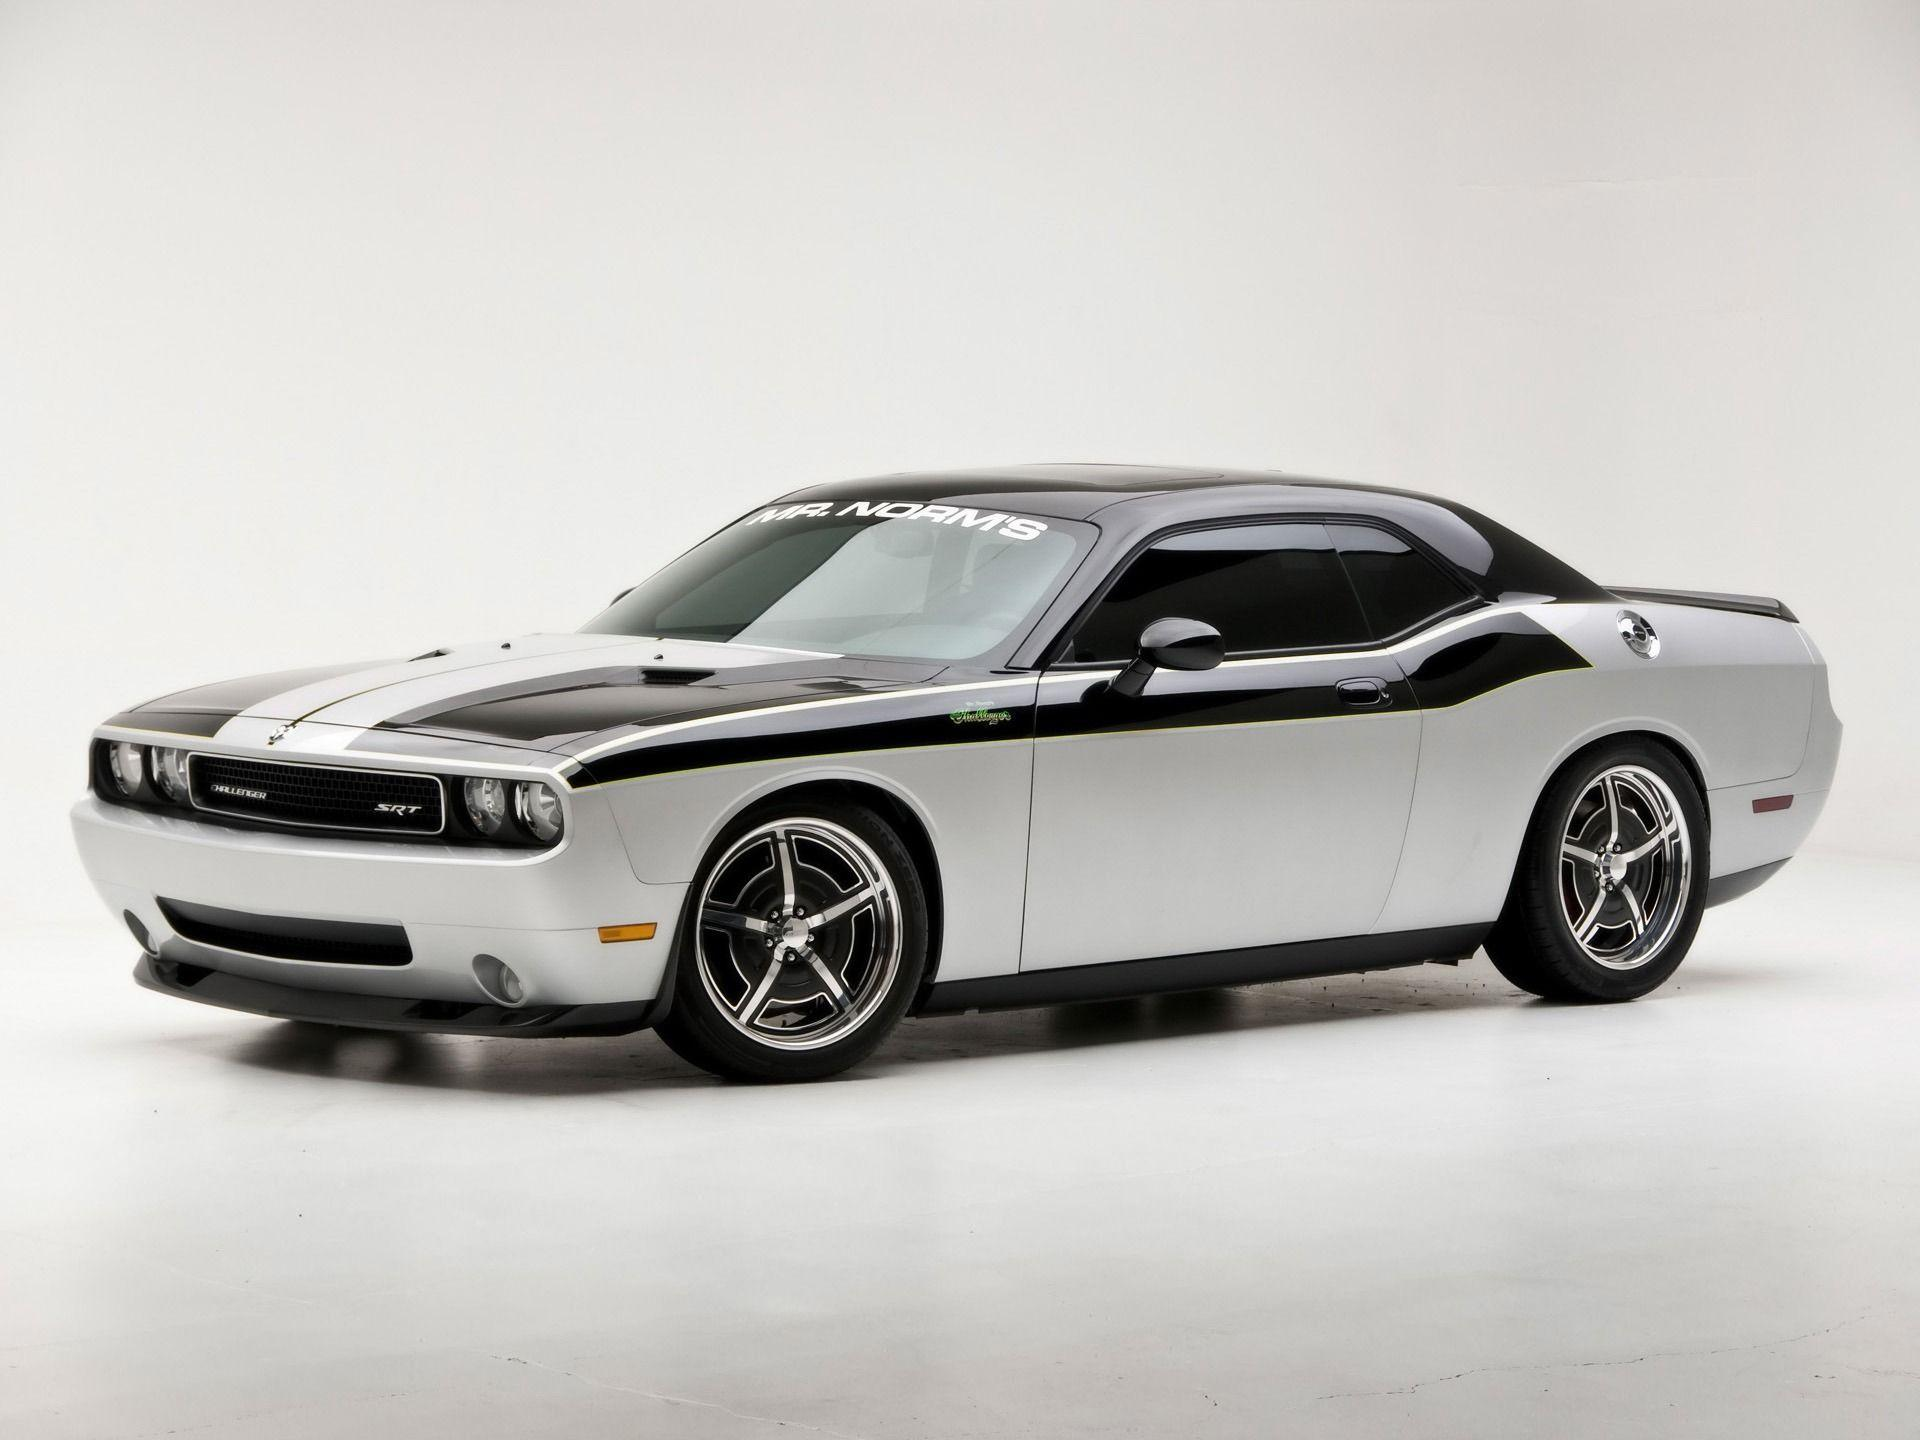 Super dodge challenger wallpaper, Dodge, Cars Wallpapers